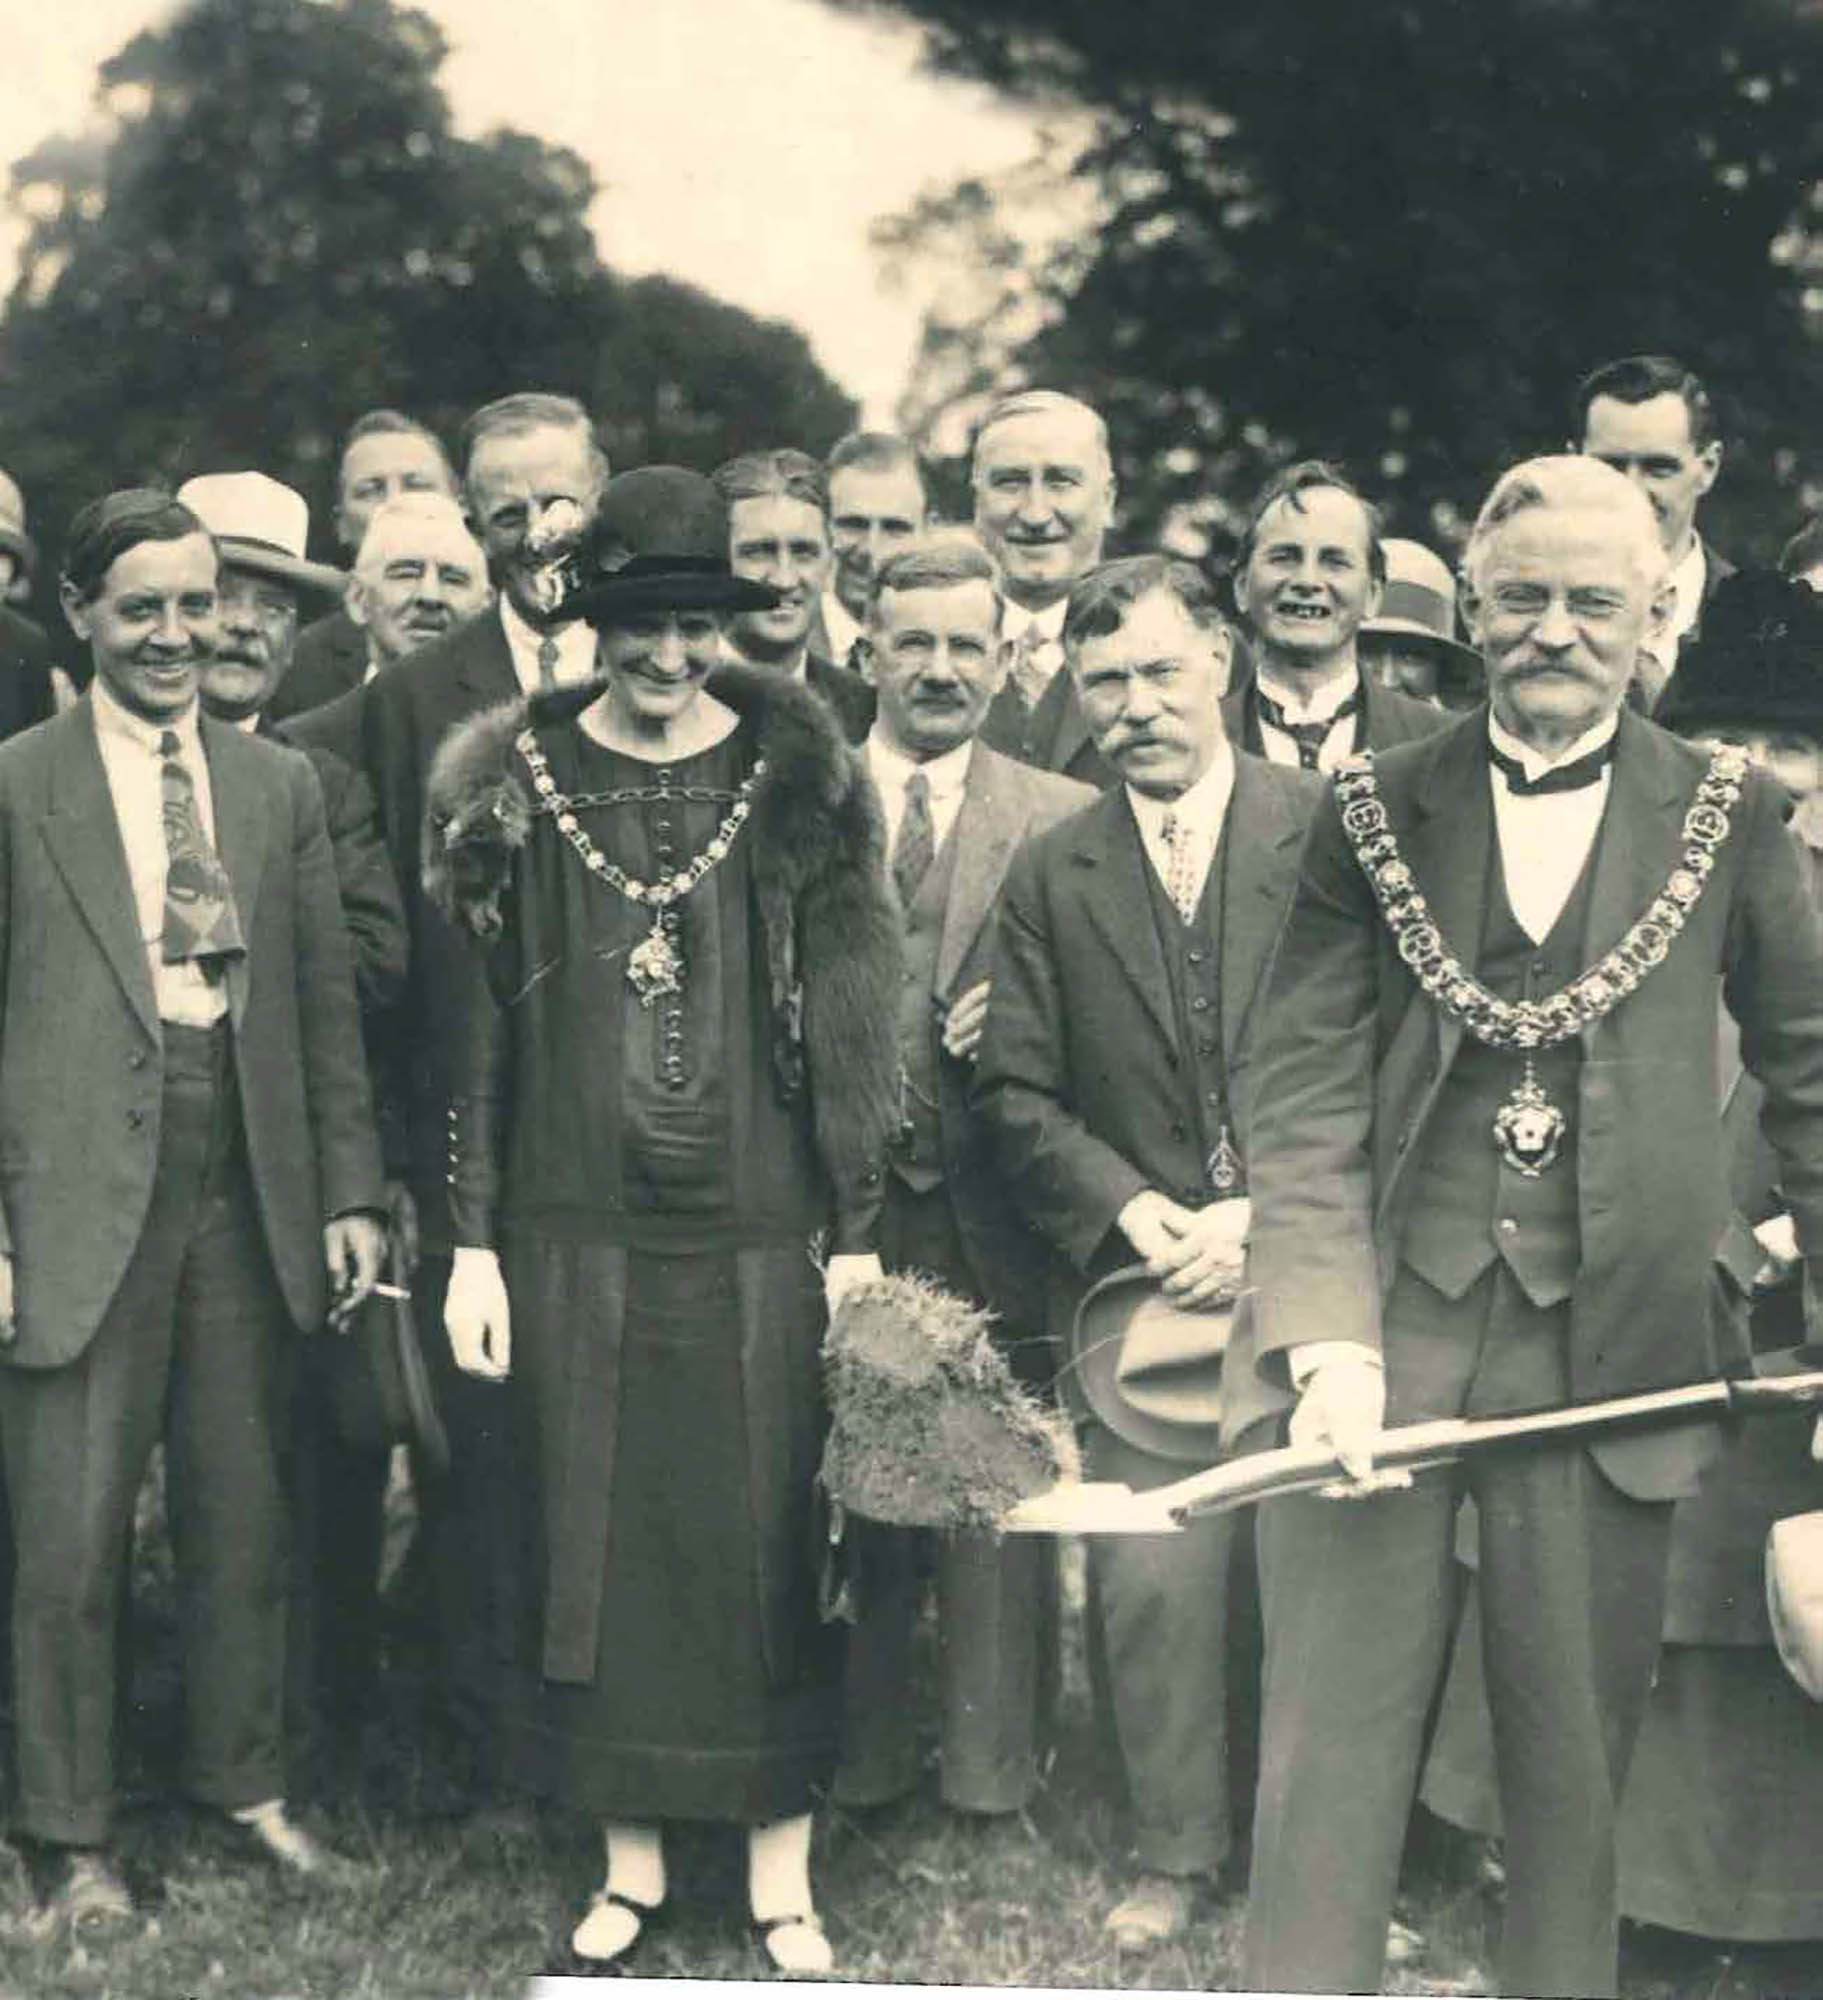 George Baton, Lord Mayor of Leicester, cutting the first piece of ground on the Braunstone Estate in 1926 - Record Office for Leicestershire, Leicester and Rutland